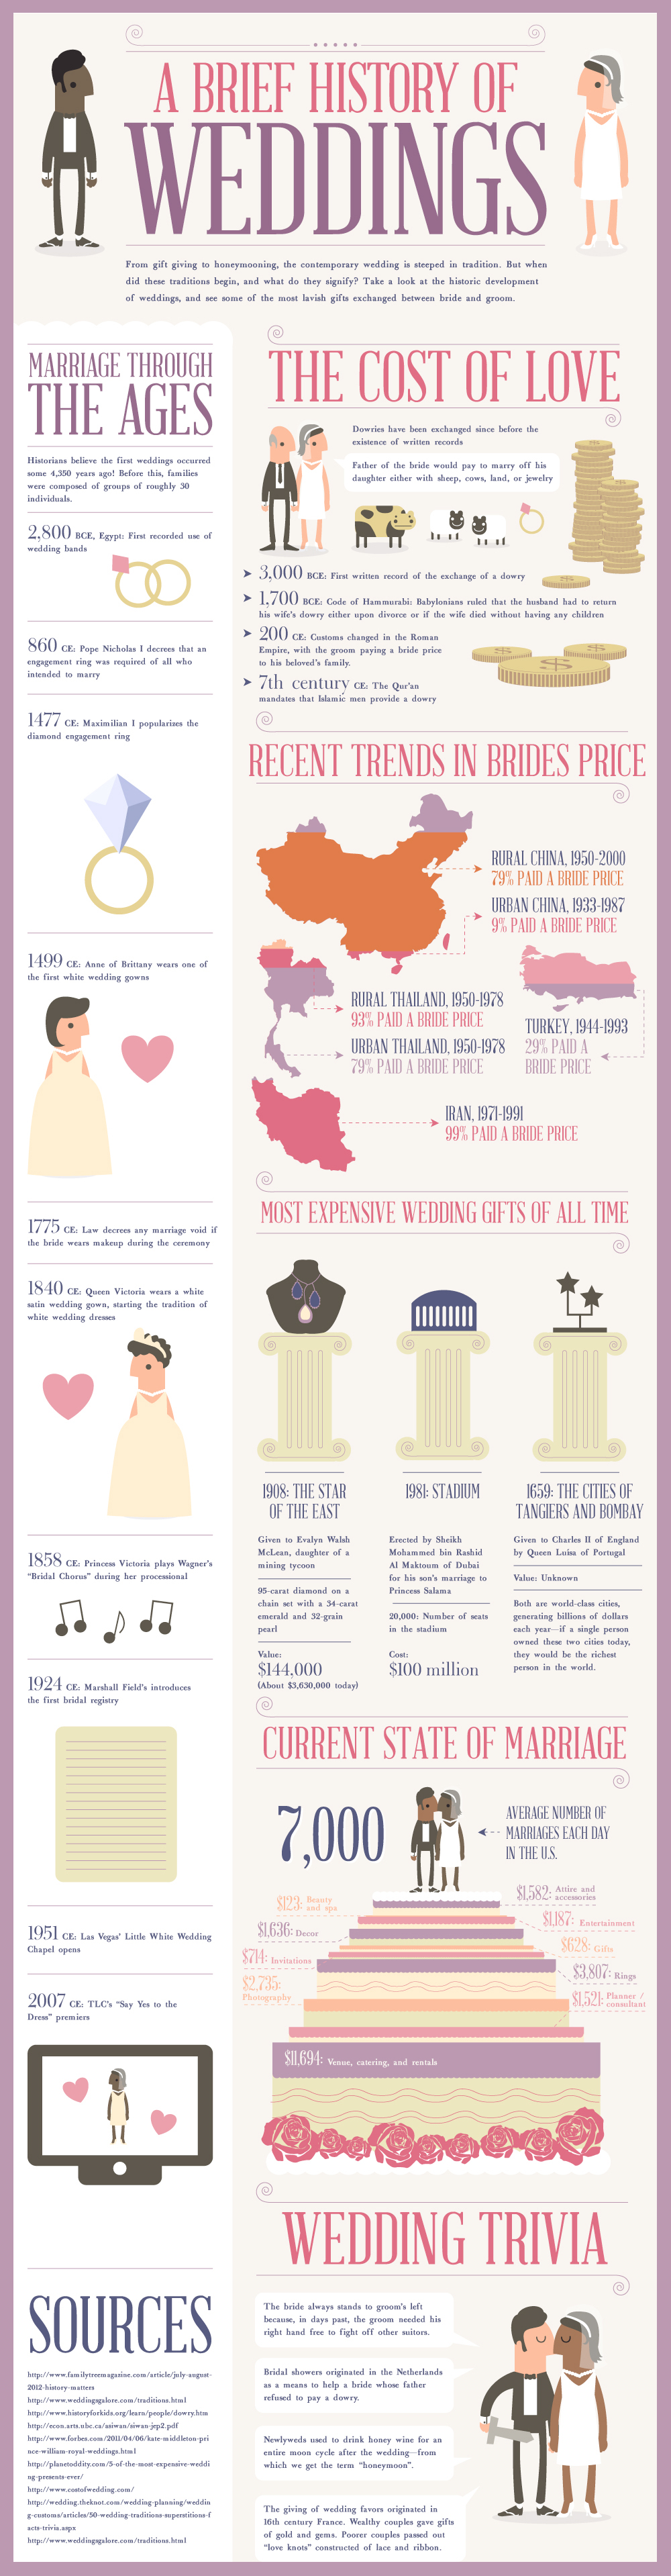 a-brief-history-of-weddings_50be7ff4466de